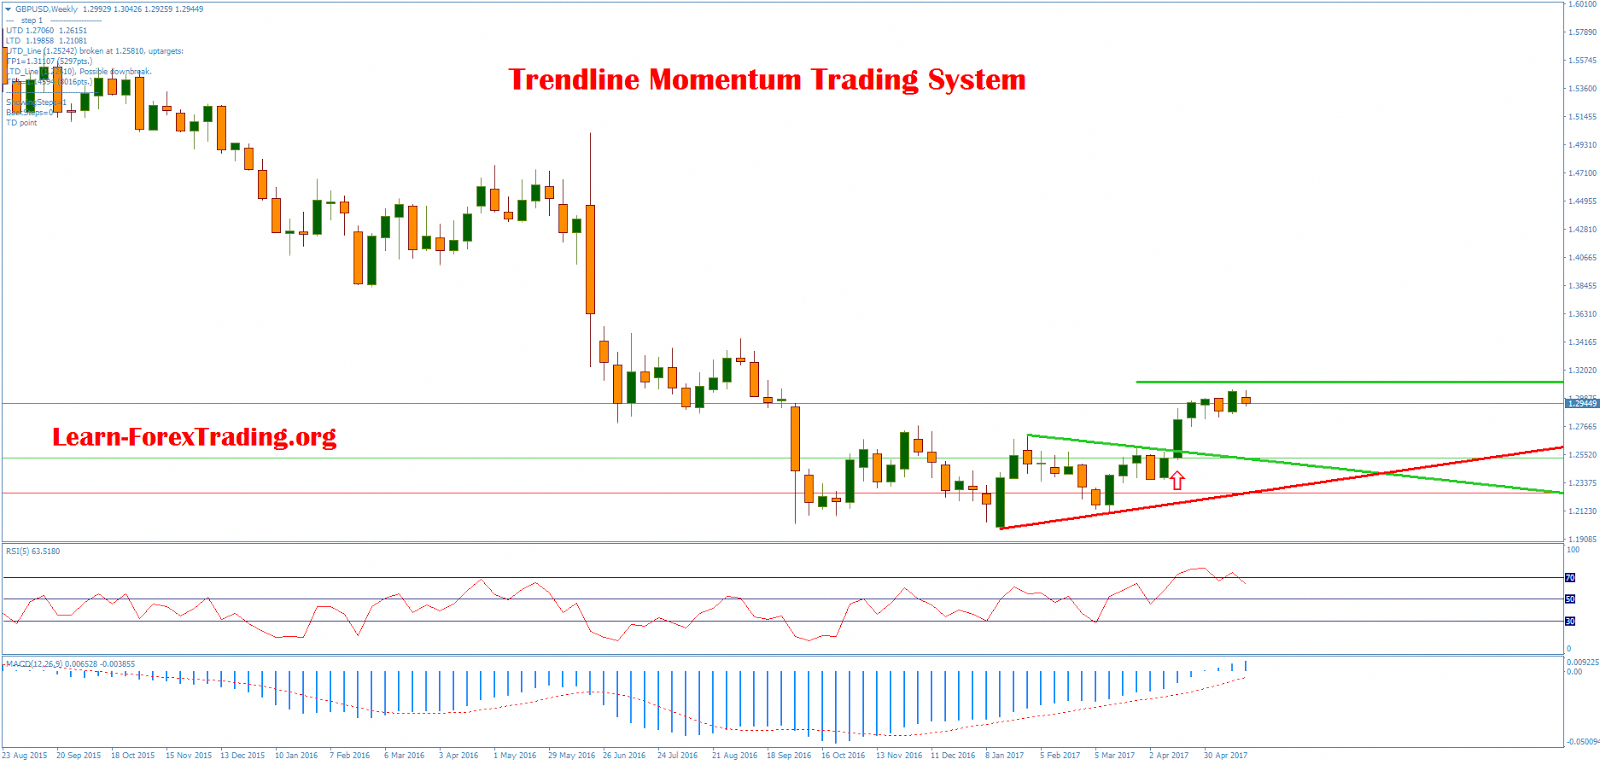 Trend line Momentum Trading System is a trend line breakout